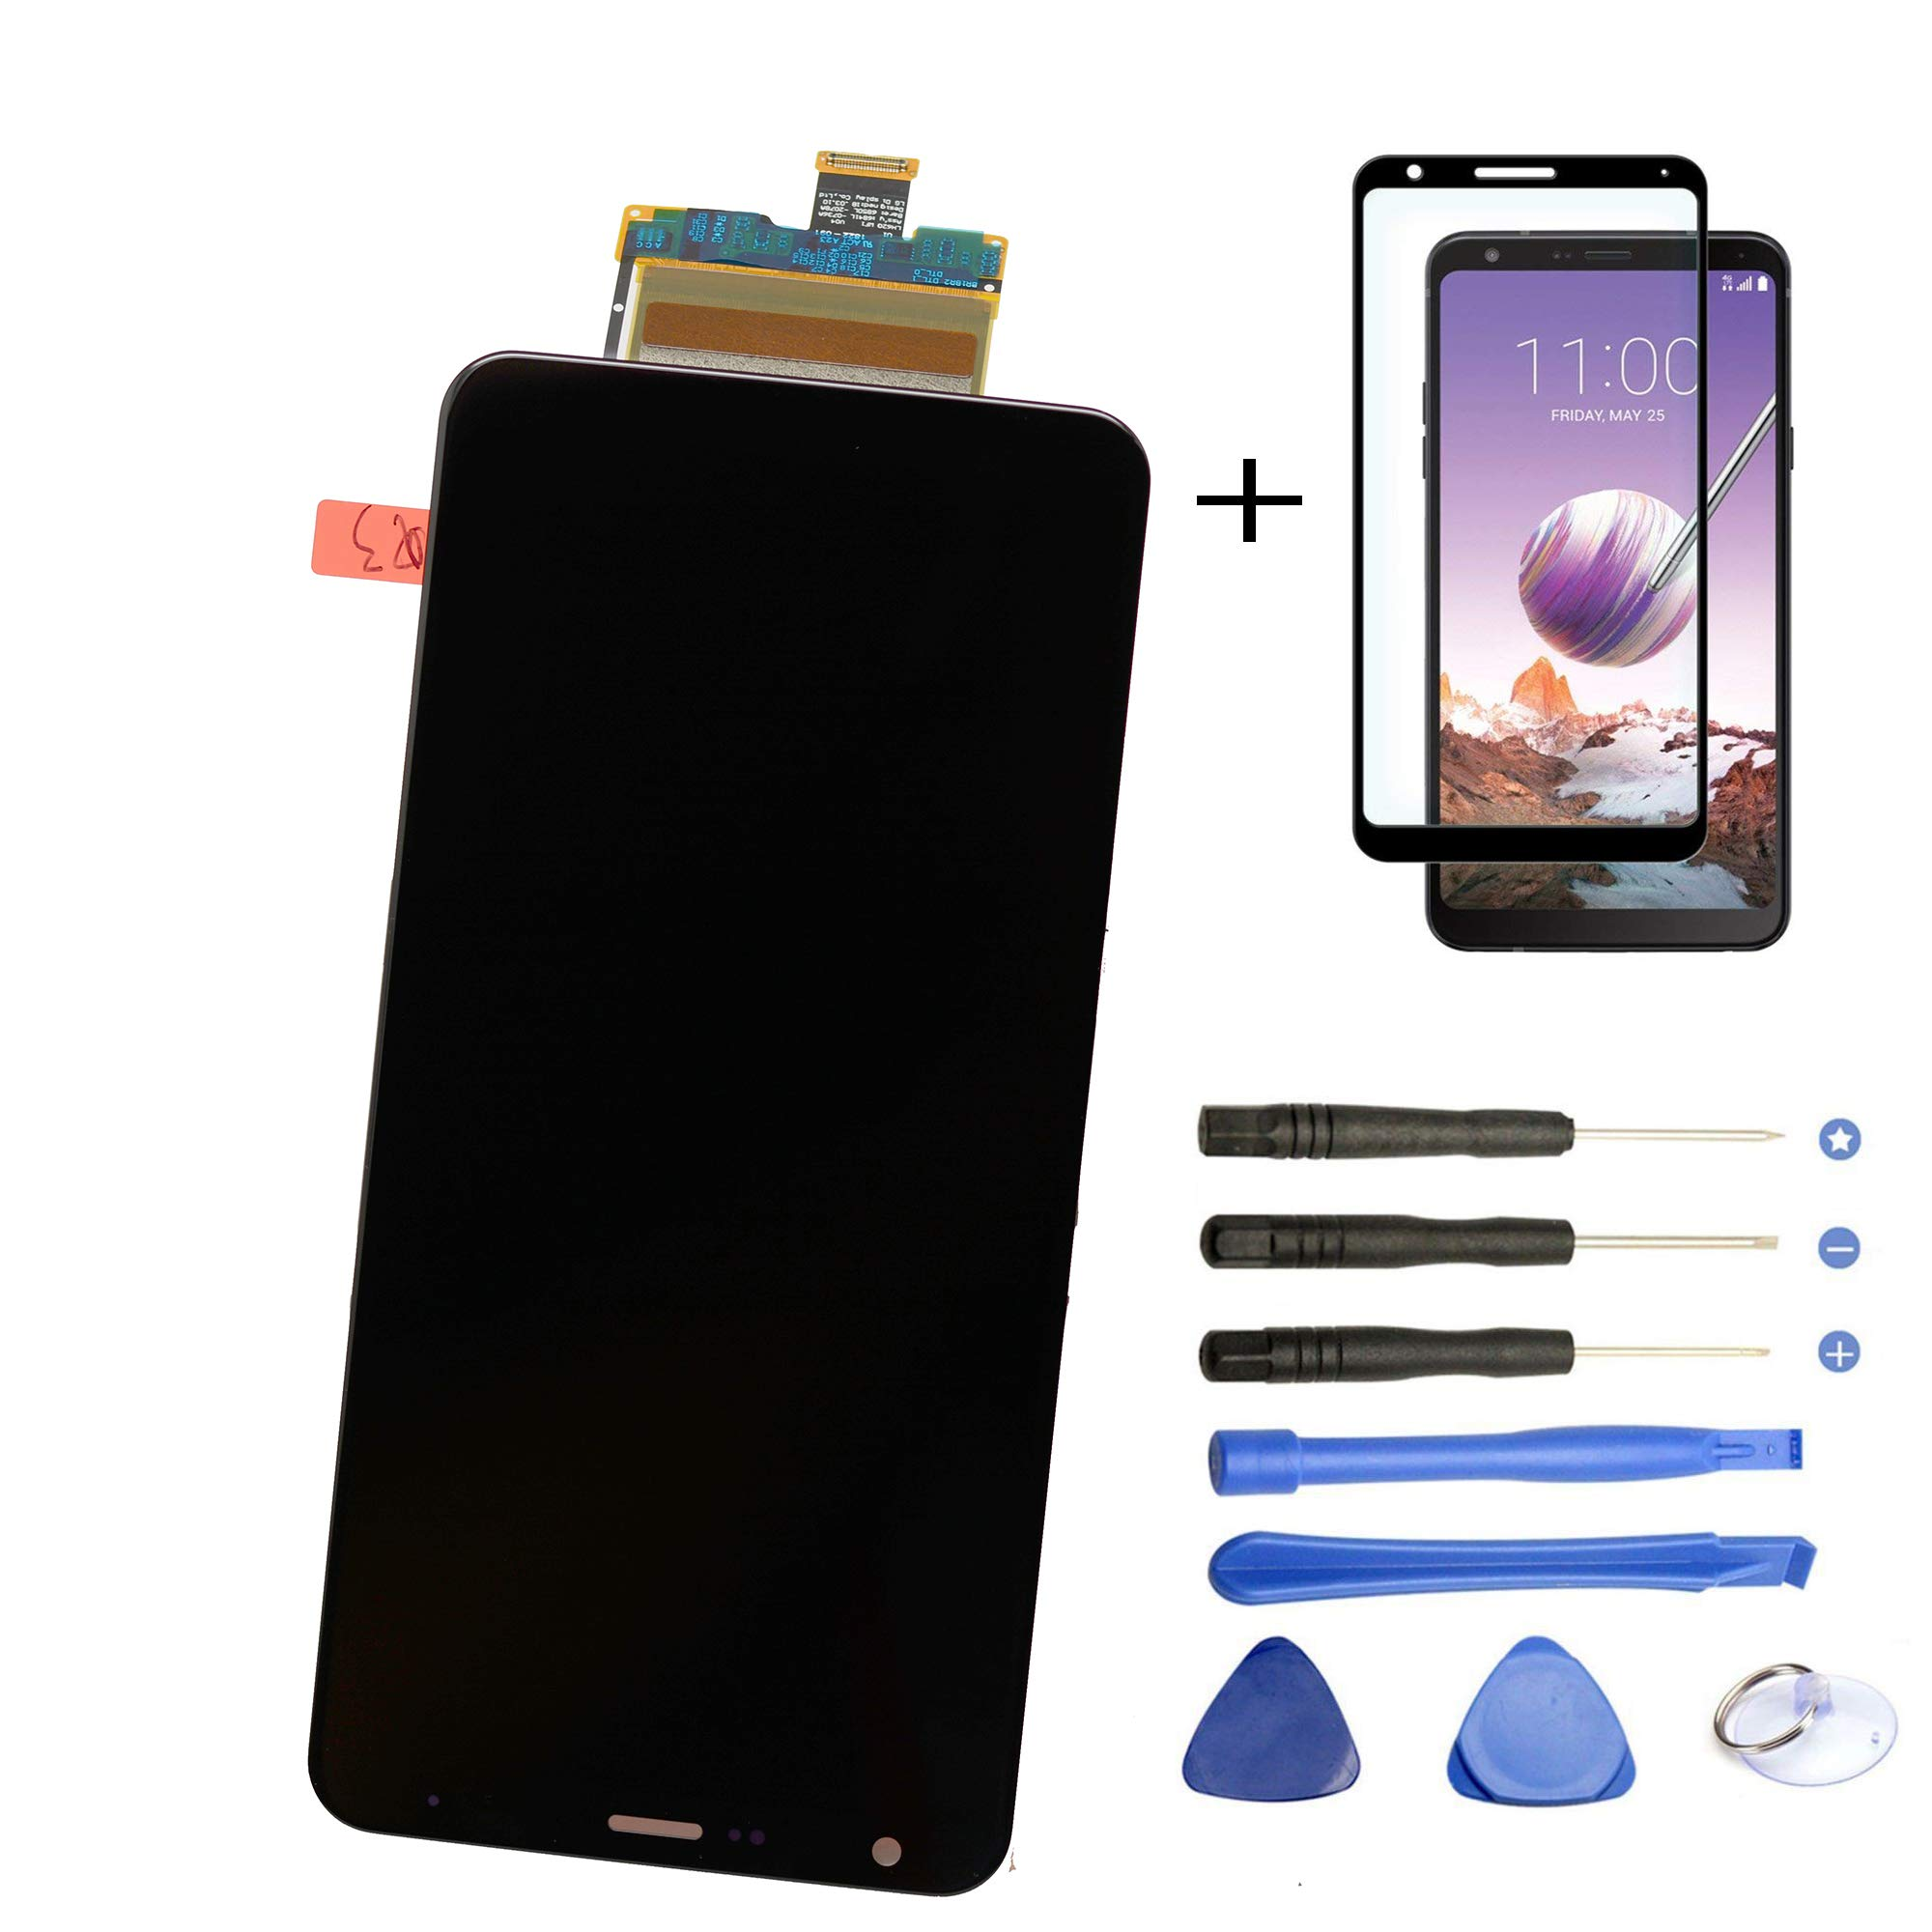 Eaglewireless Replacement Full LCD Screen Assembly with Touch Screen Digitizer and LCD Pre-Installed for LG Stylo 4 / Q Stylus Q710 Q710MS Q710AL Q710US 6.2''+Free Tempered Glass Protector